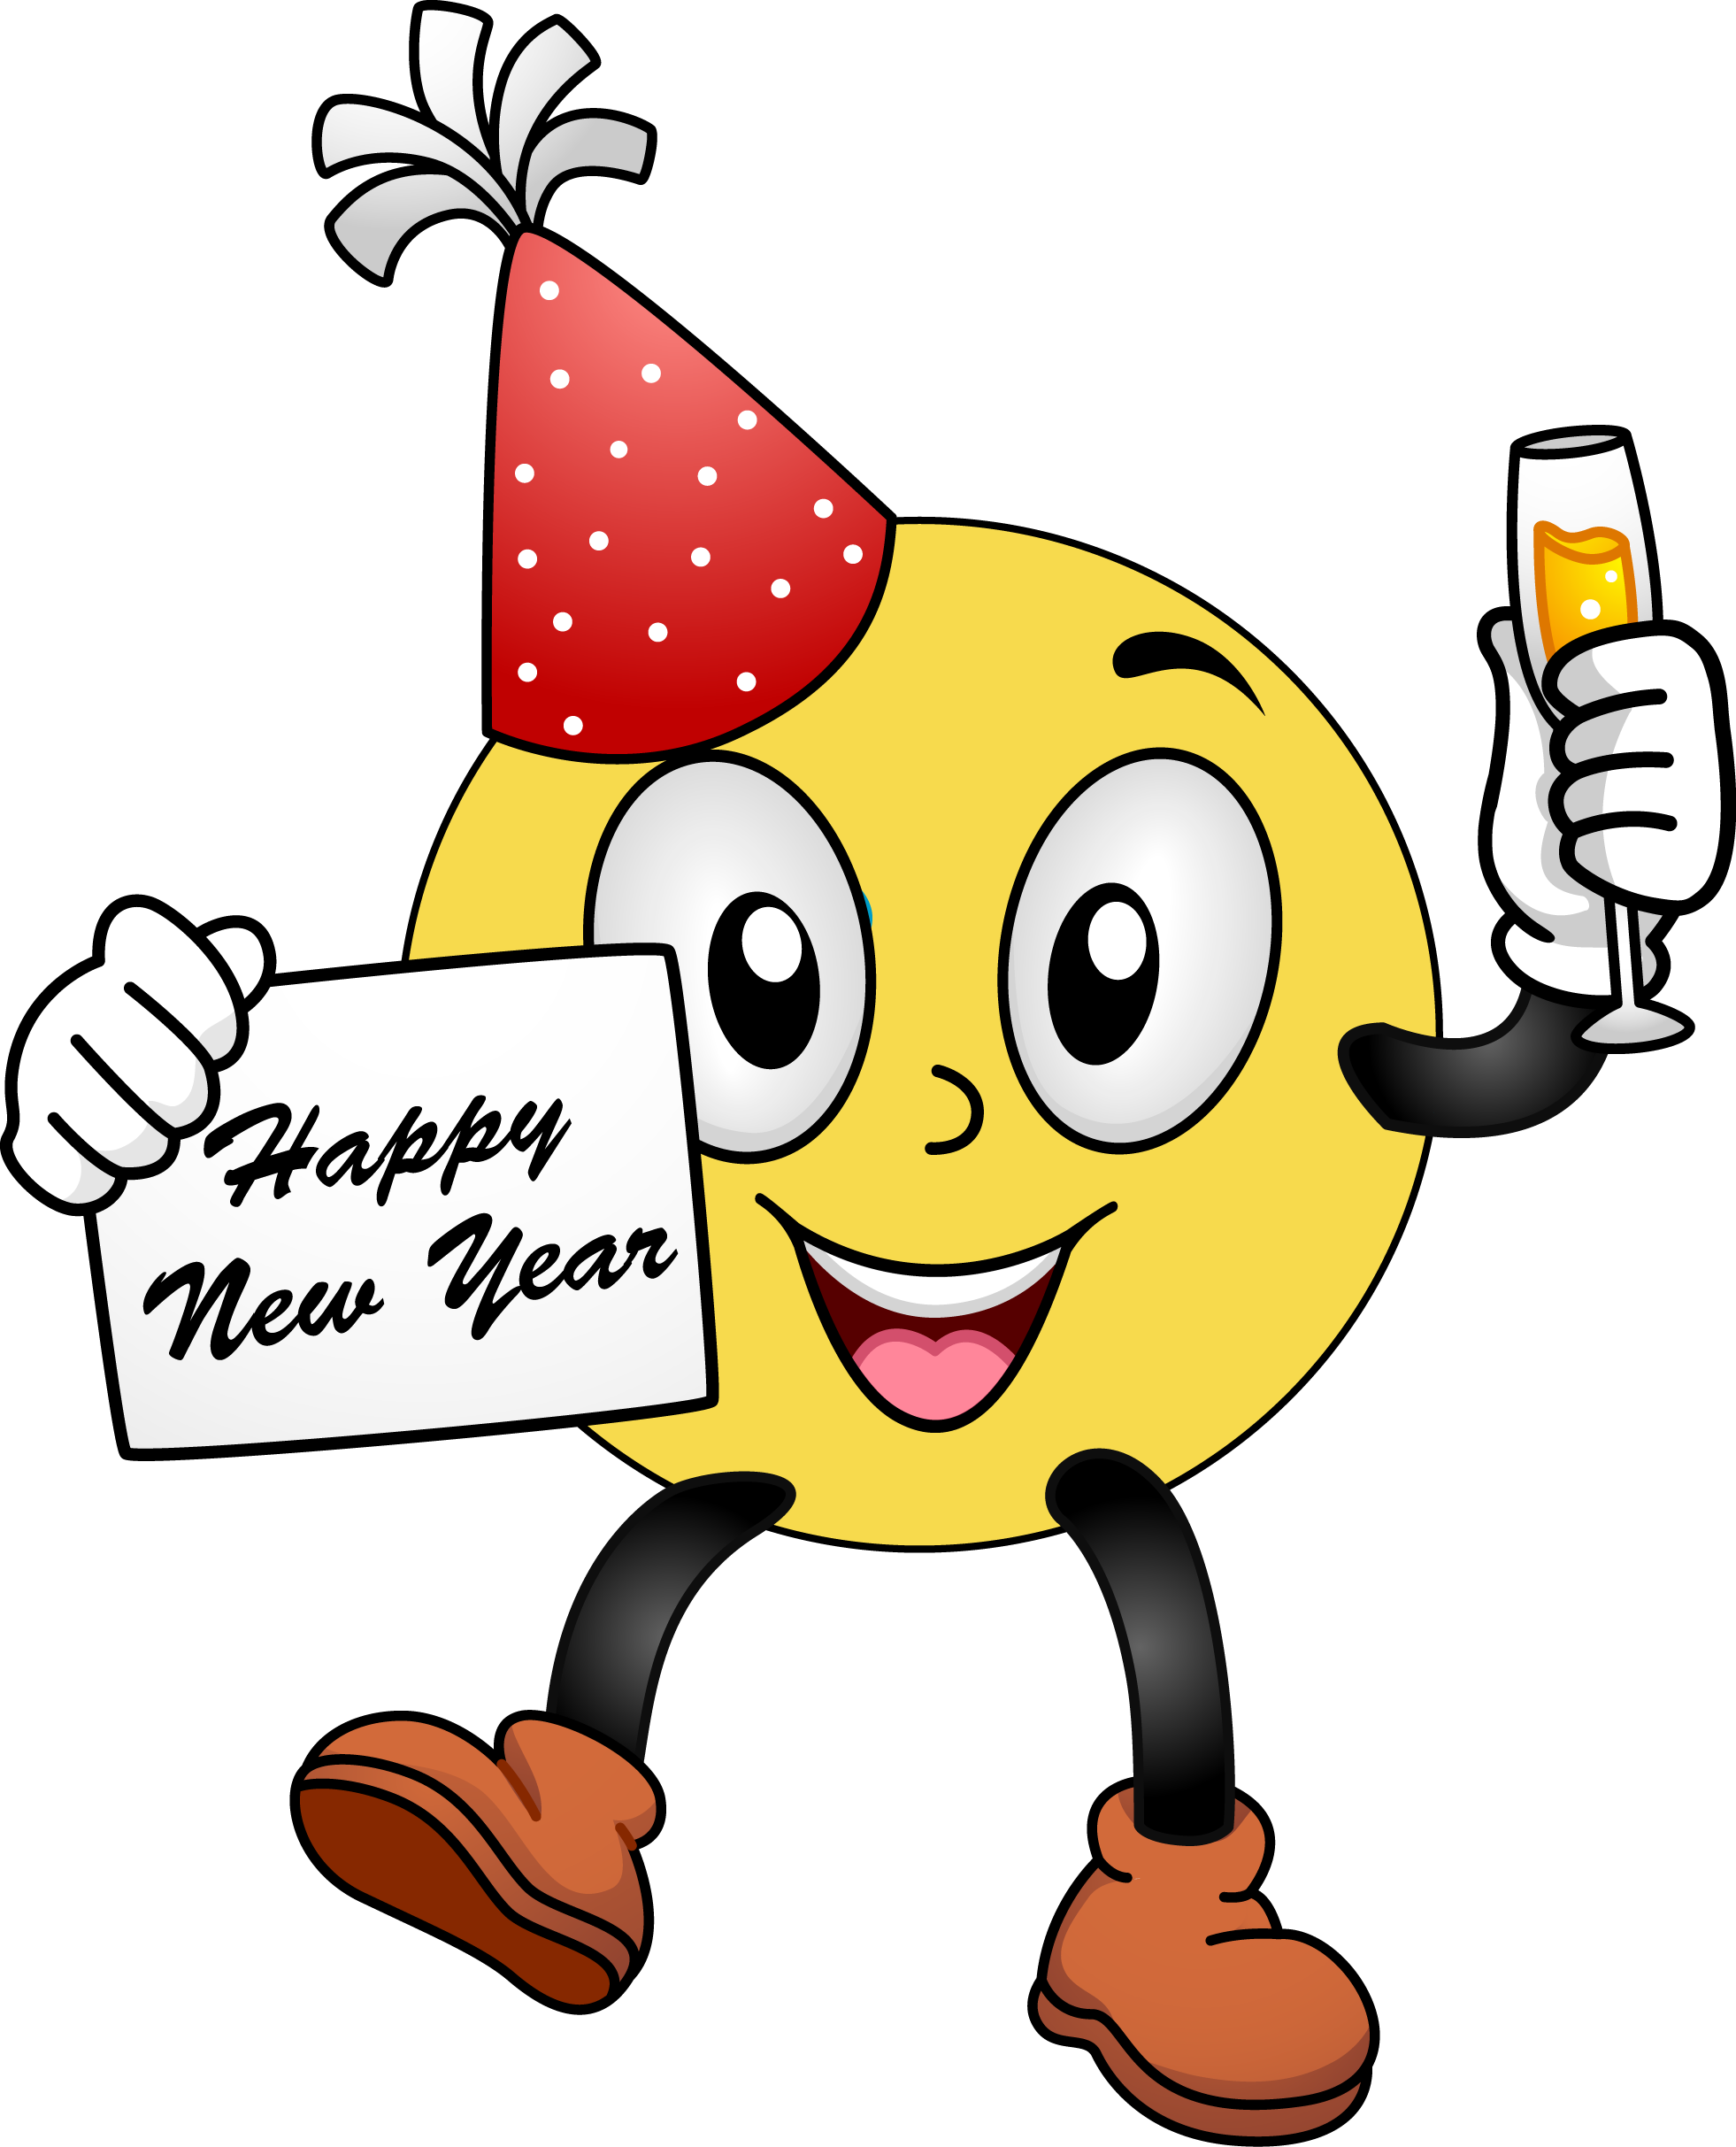 Clipart free new year. Smiley face happy panda